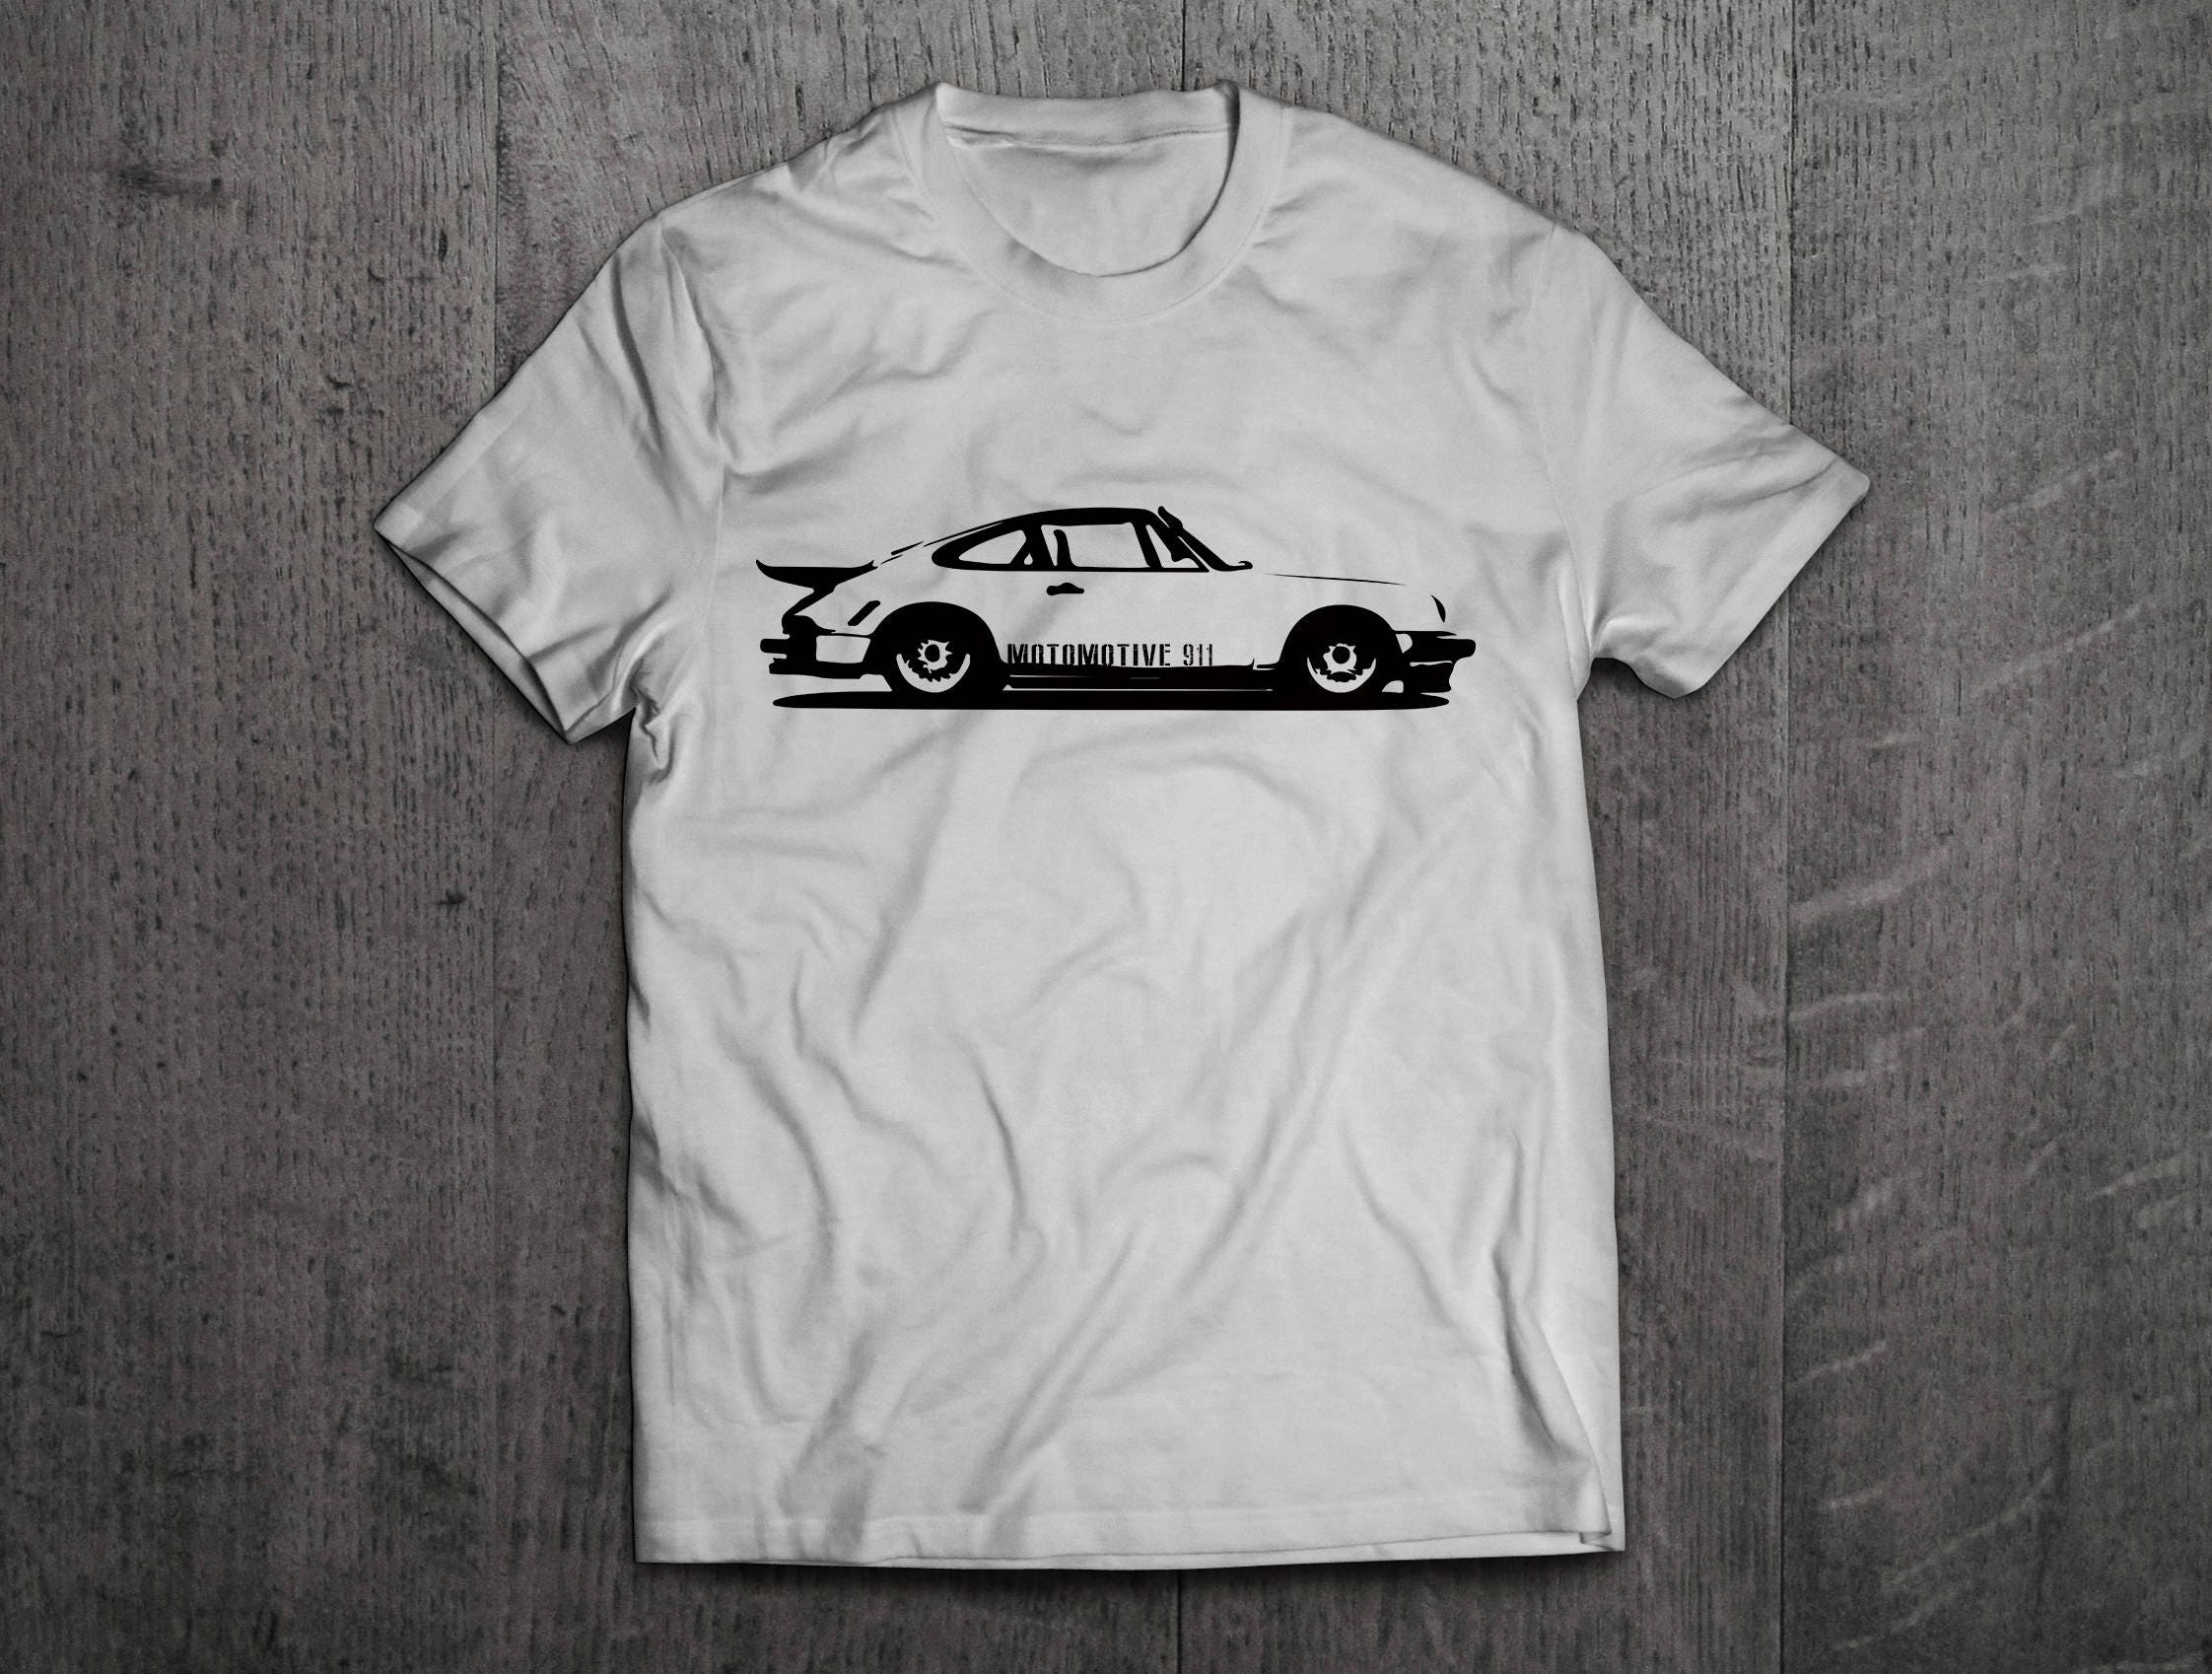 Porsche Shirts Porsche 911 T Shirts German Racing Shirts Car